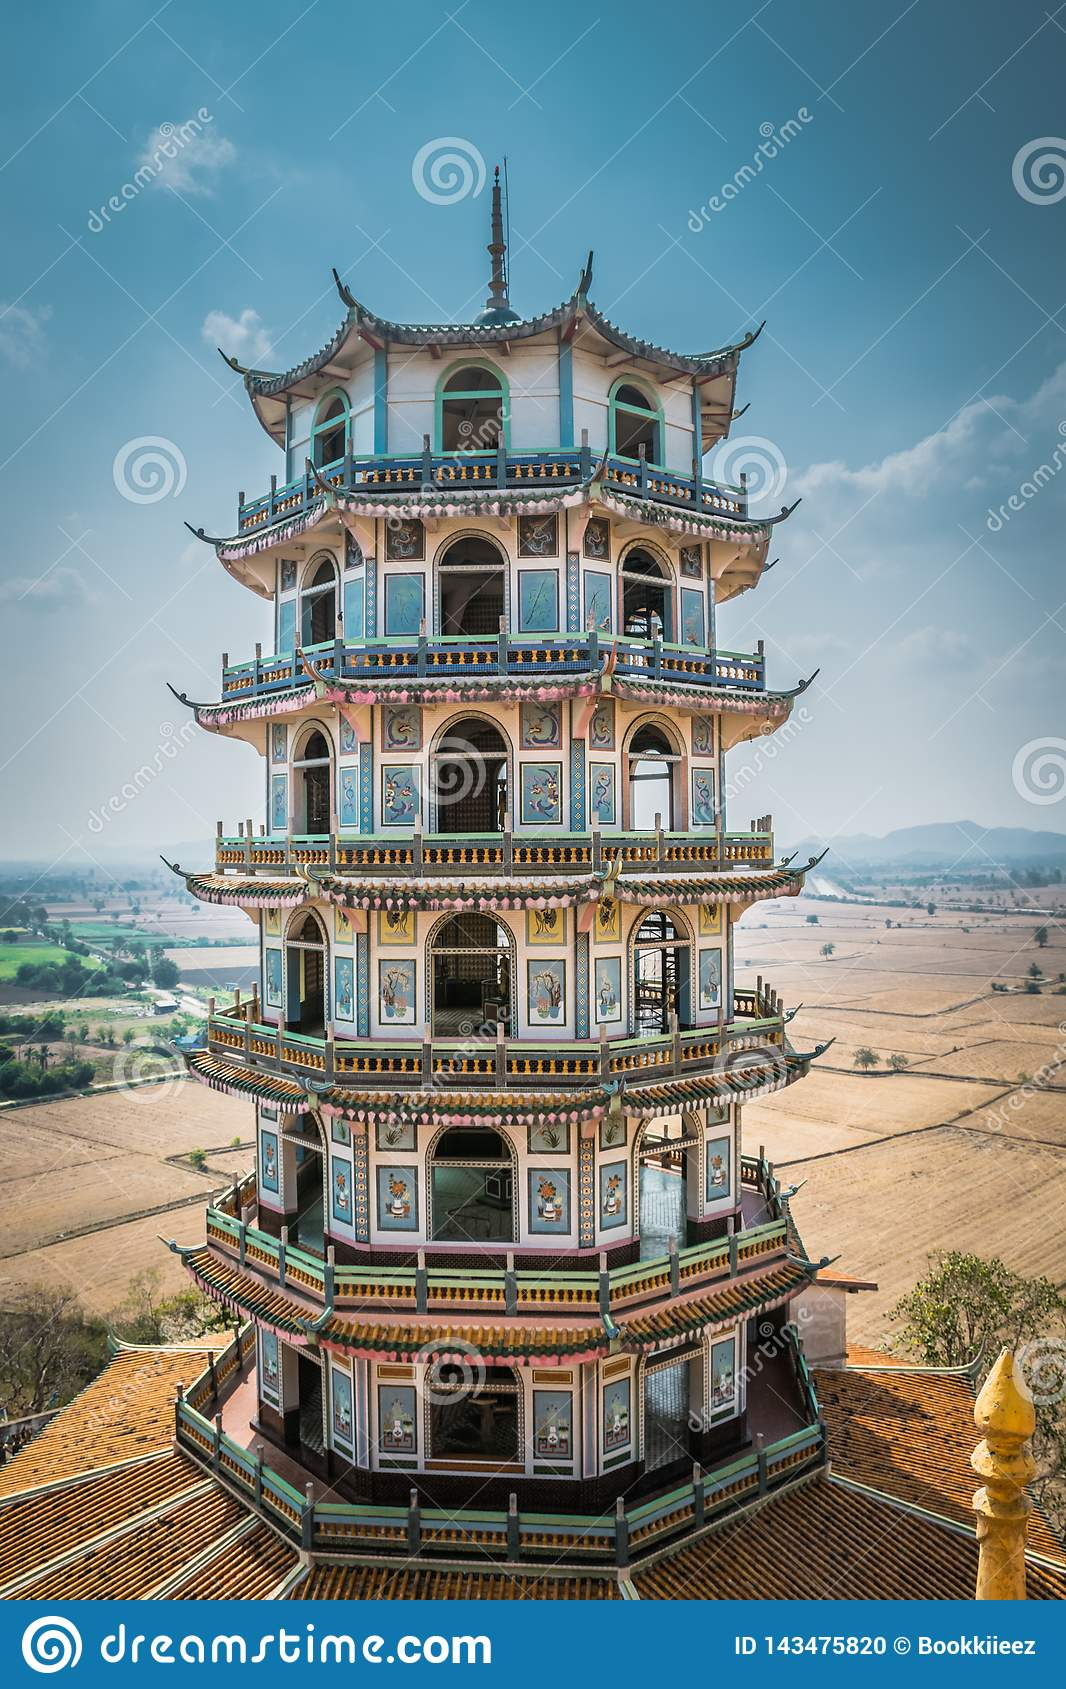 Tower with CHinese style at Wat Tham Suea or Tham Suea temple in Kanchanaburi, Thailand.